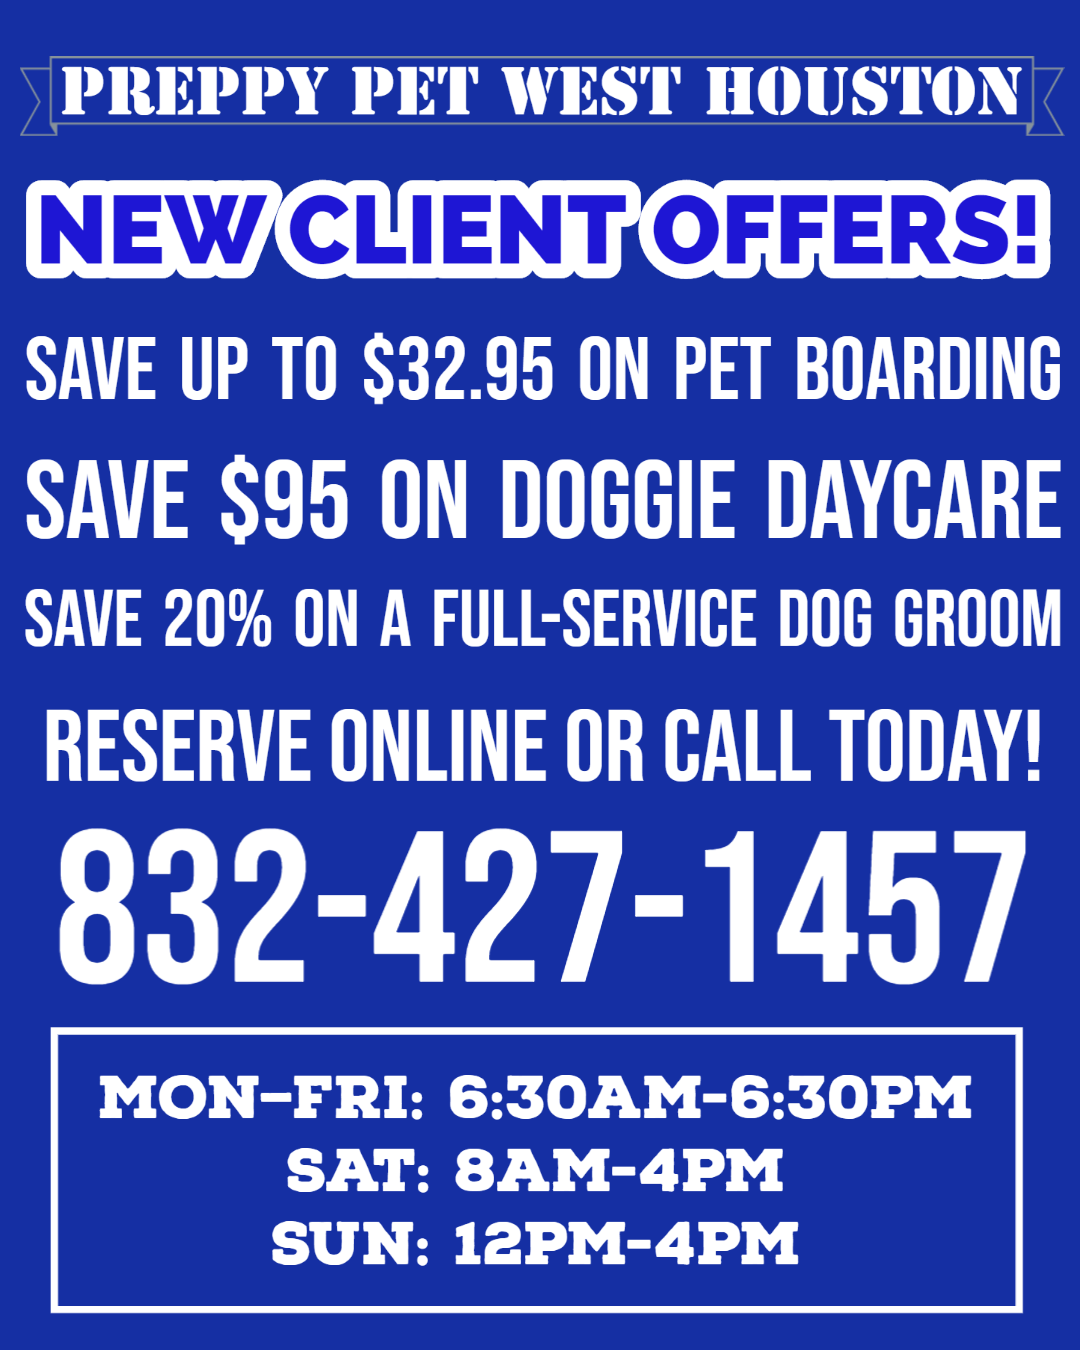 Preppy Pet West Houston | Promotional Offers